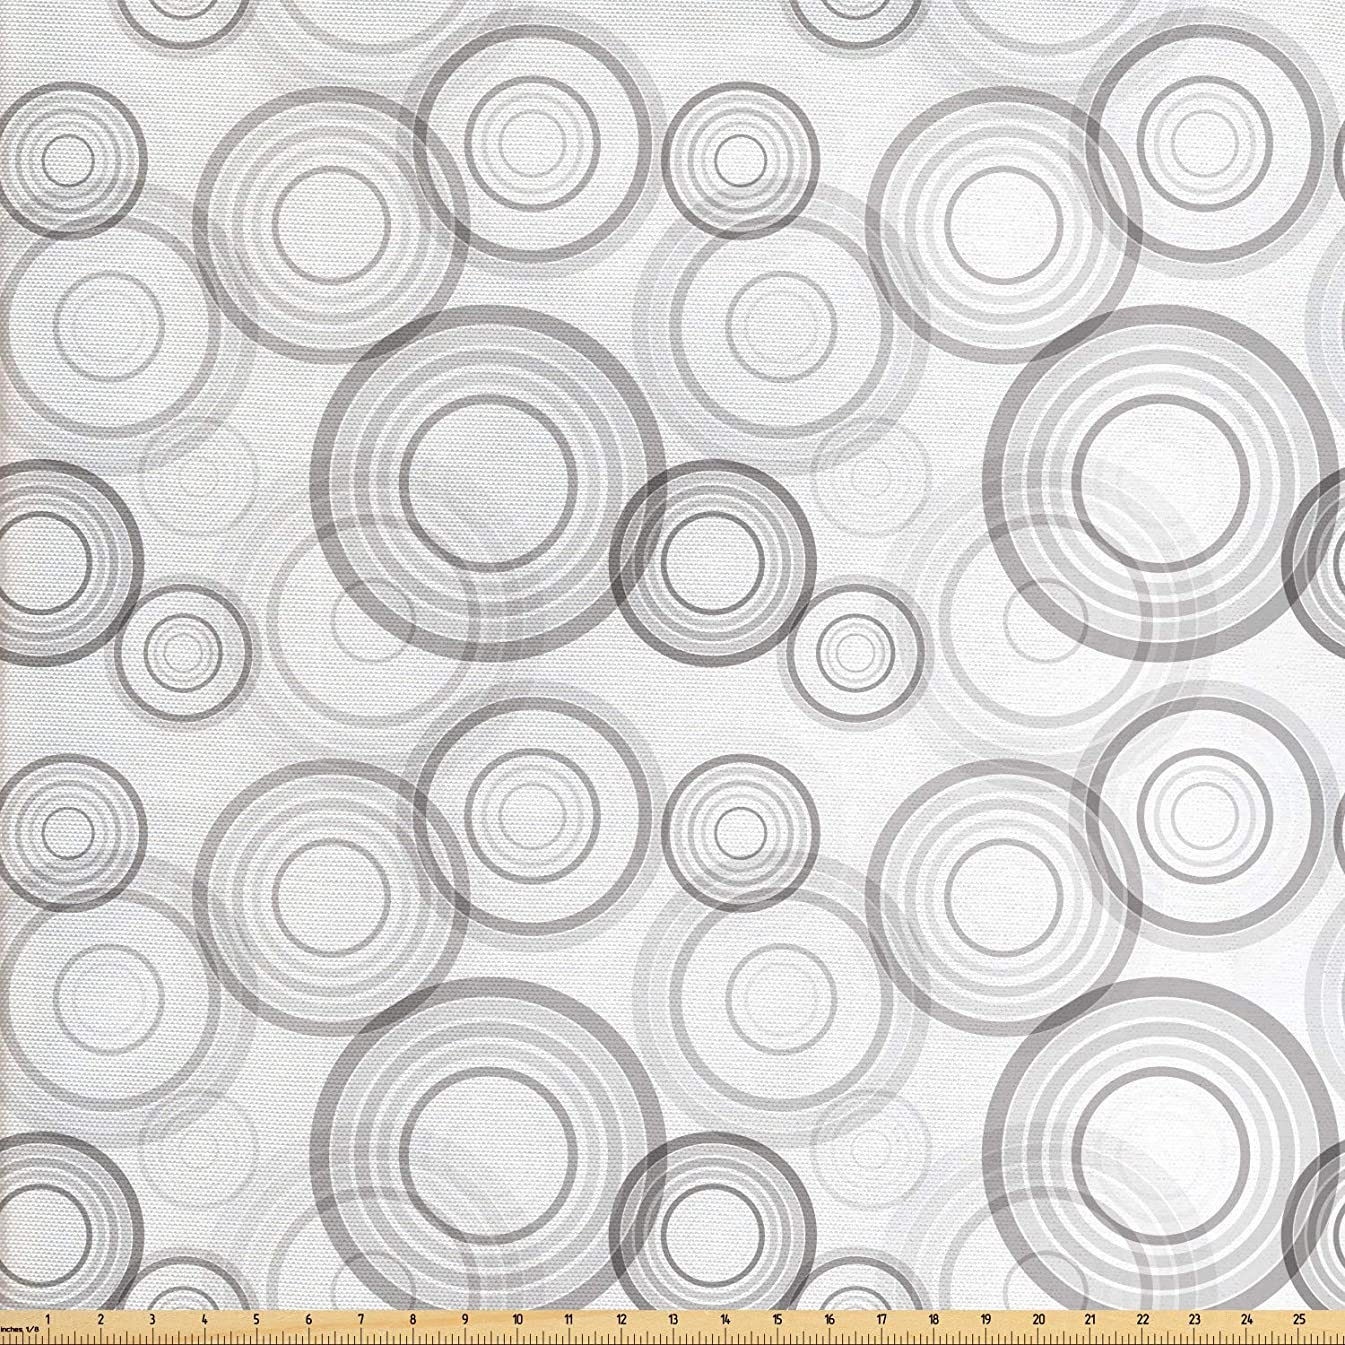 Lunarable Grey Fabric by The Yard, Ring Shapes Abstract Geometric Pattern Concentric Circles Contemporary Modern, Decorative Fabric for Upholstery and Home Accents, 2 Yards, Grey and White